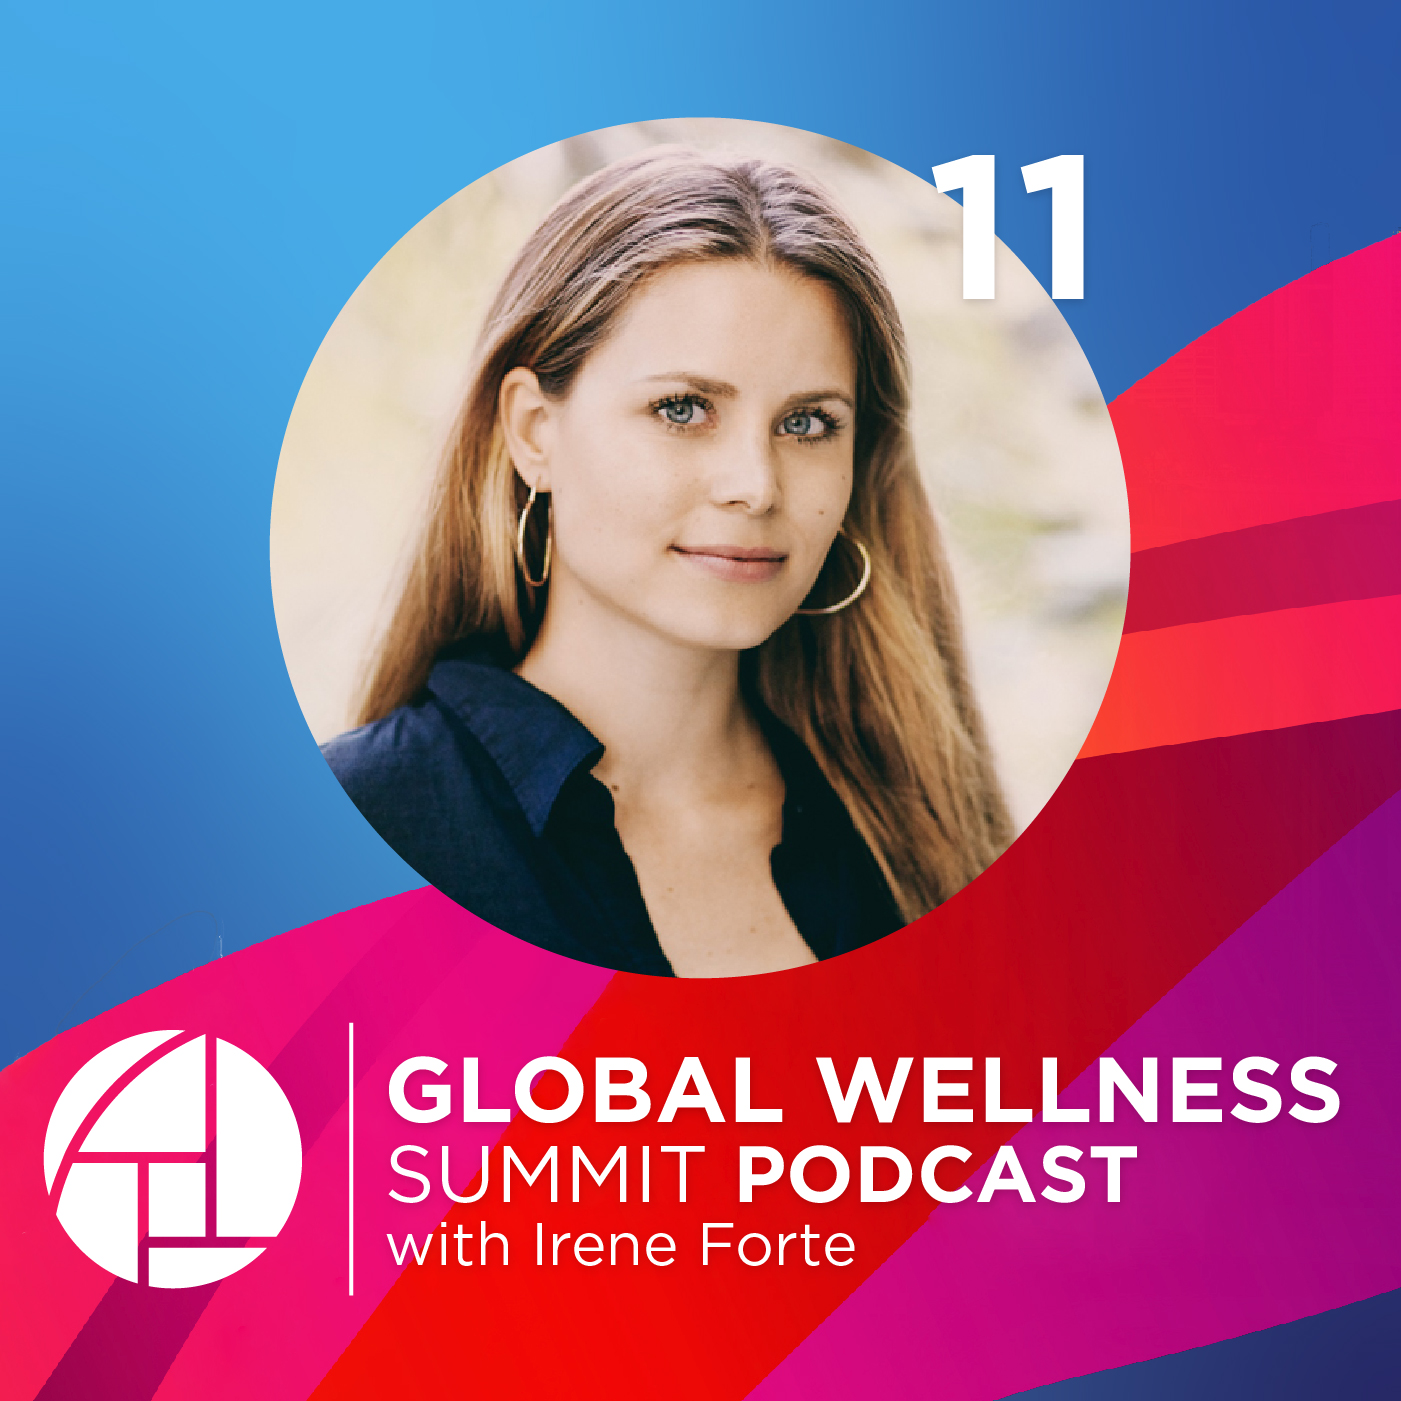 11. What Millennials Want: A Story, Authenticity, & Transparency - with Irene Forte from Rocco Forte Hotels & Irene Forte Skincare